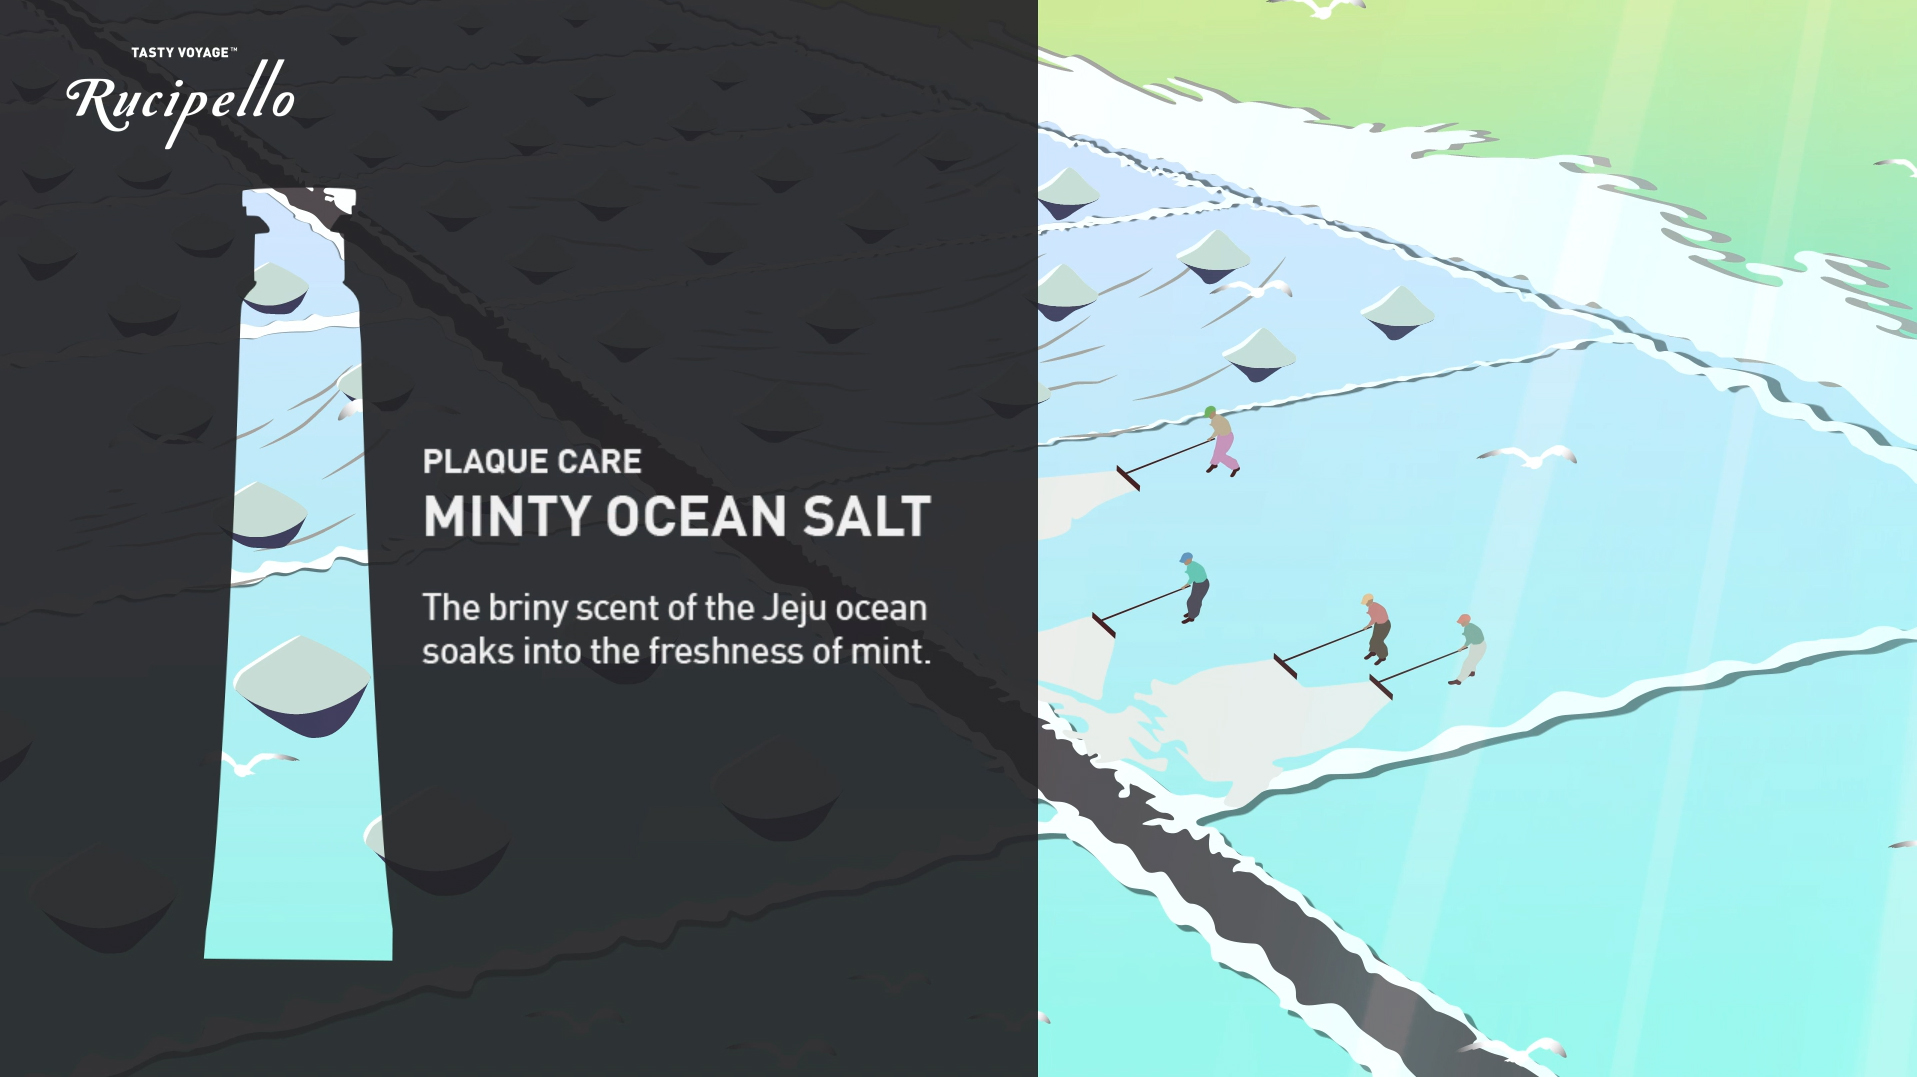 MINTY OCEAN SALT MOVIE